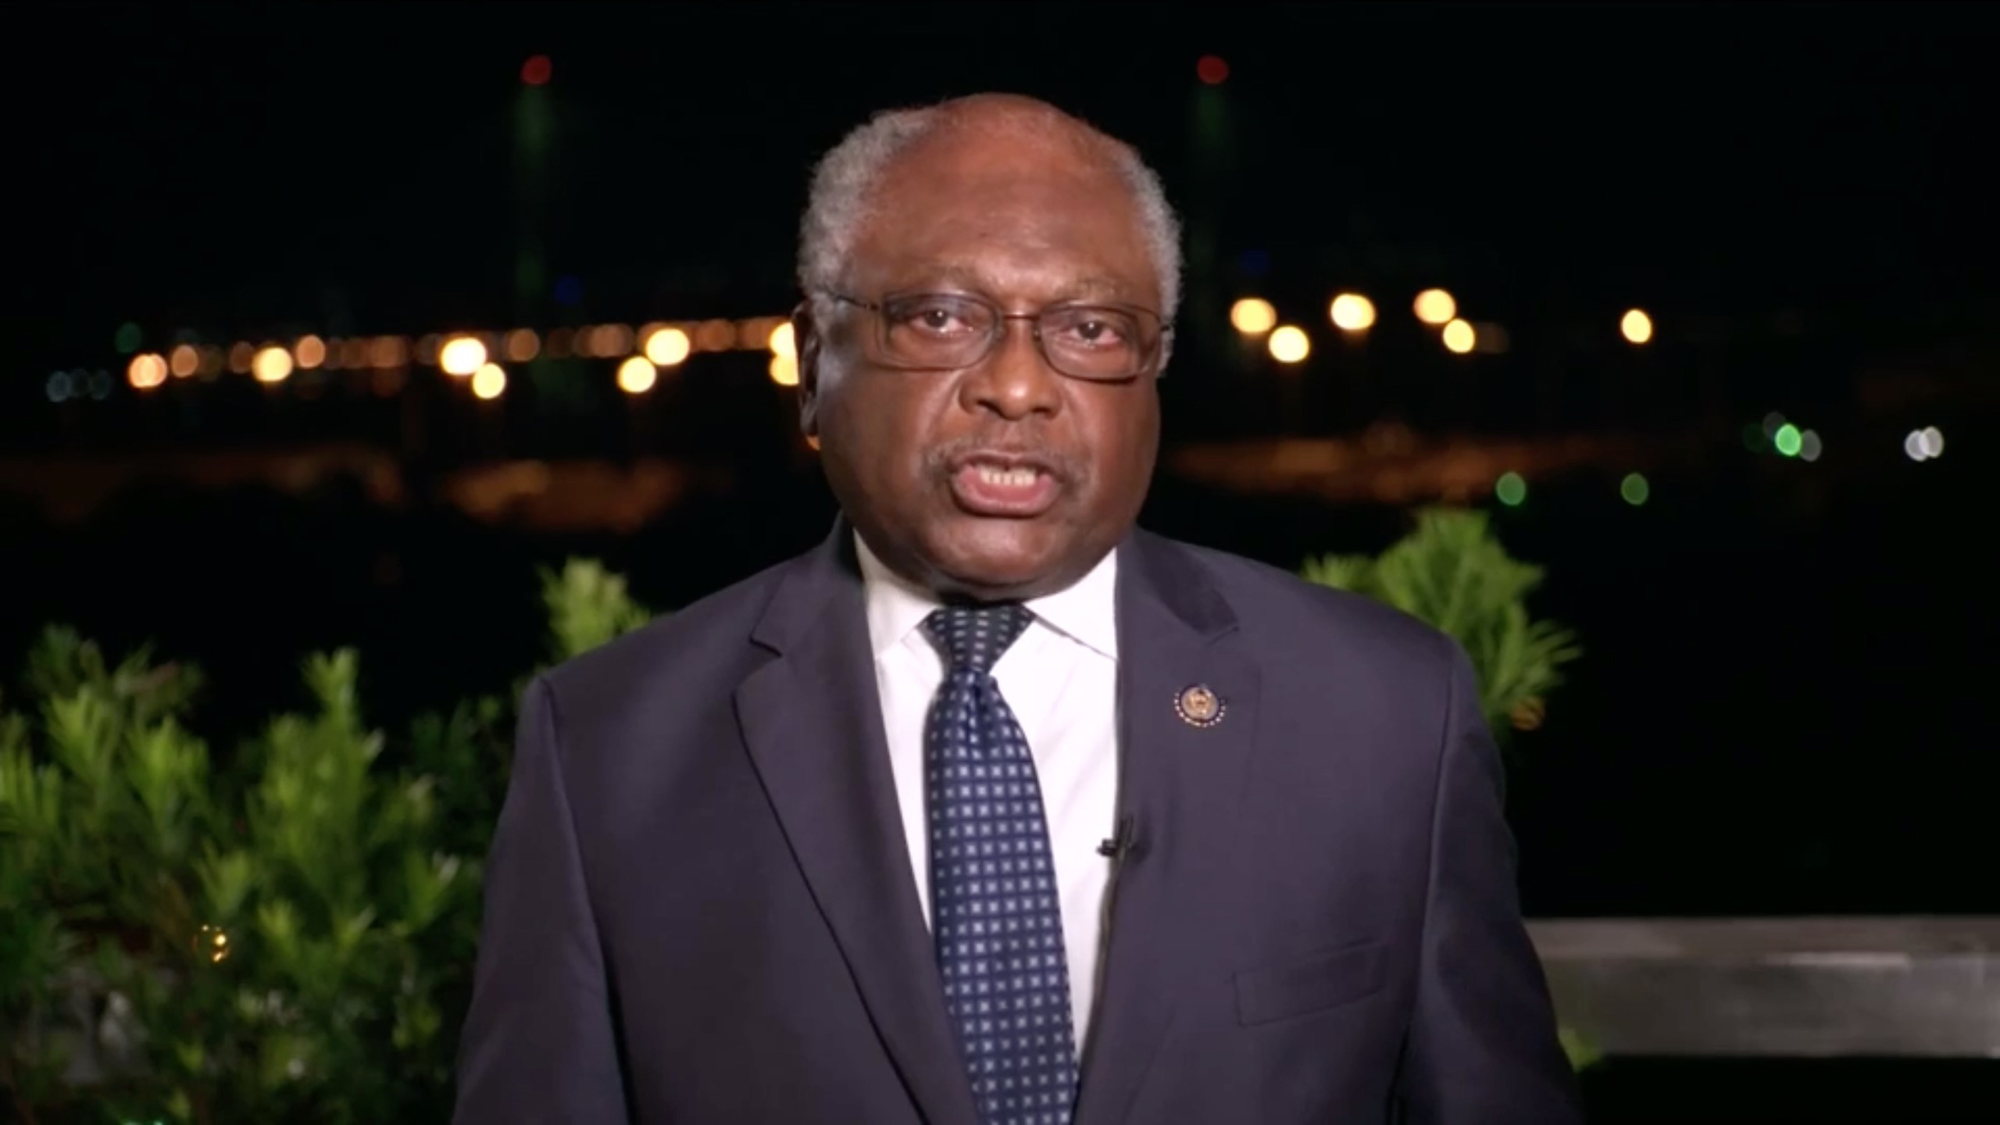 Jim Clyburn, Majority Whip in the U.S. House of Representatives and representing South Carolina's 6th District.